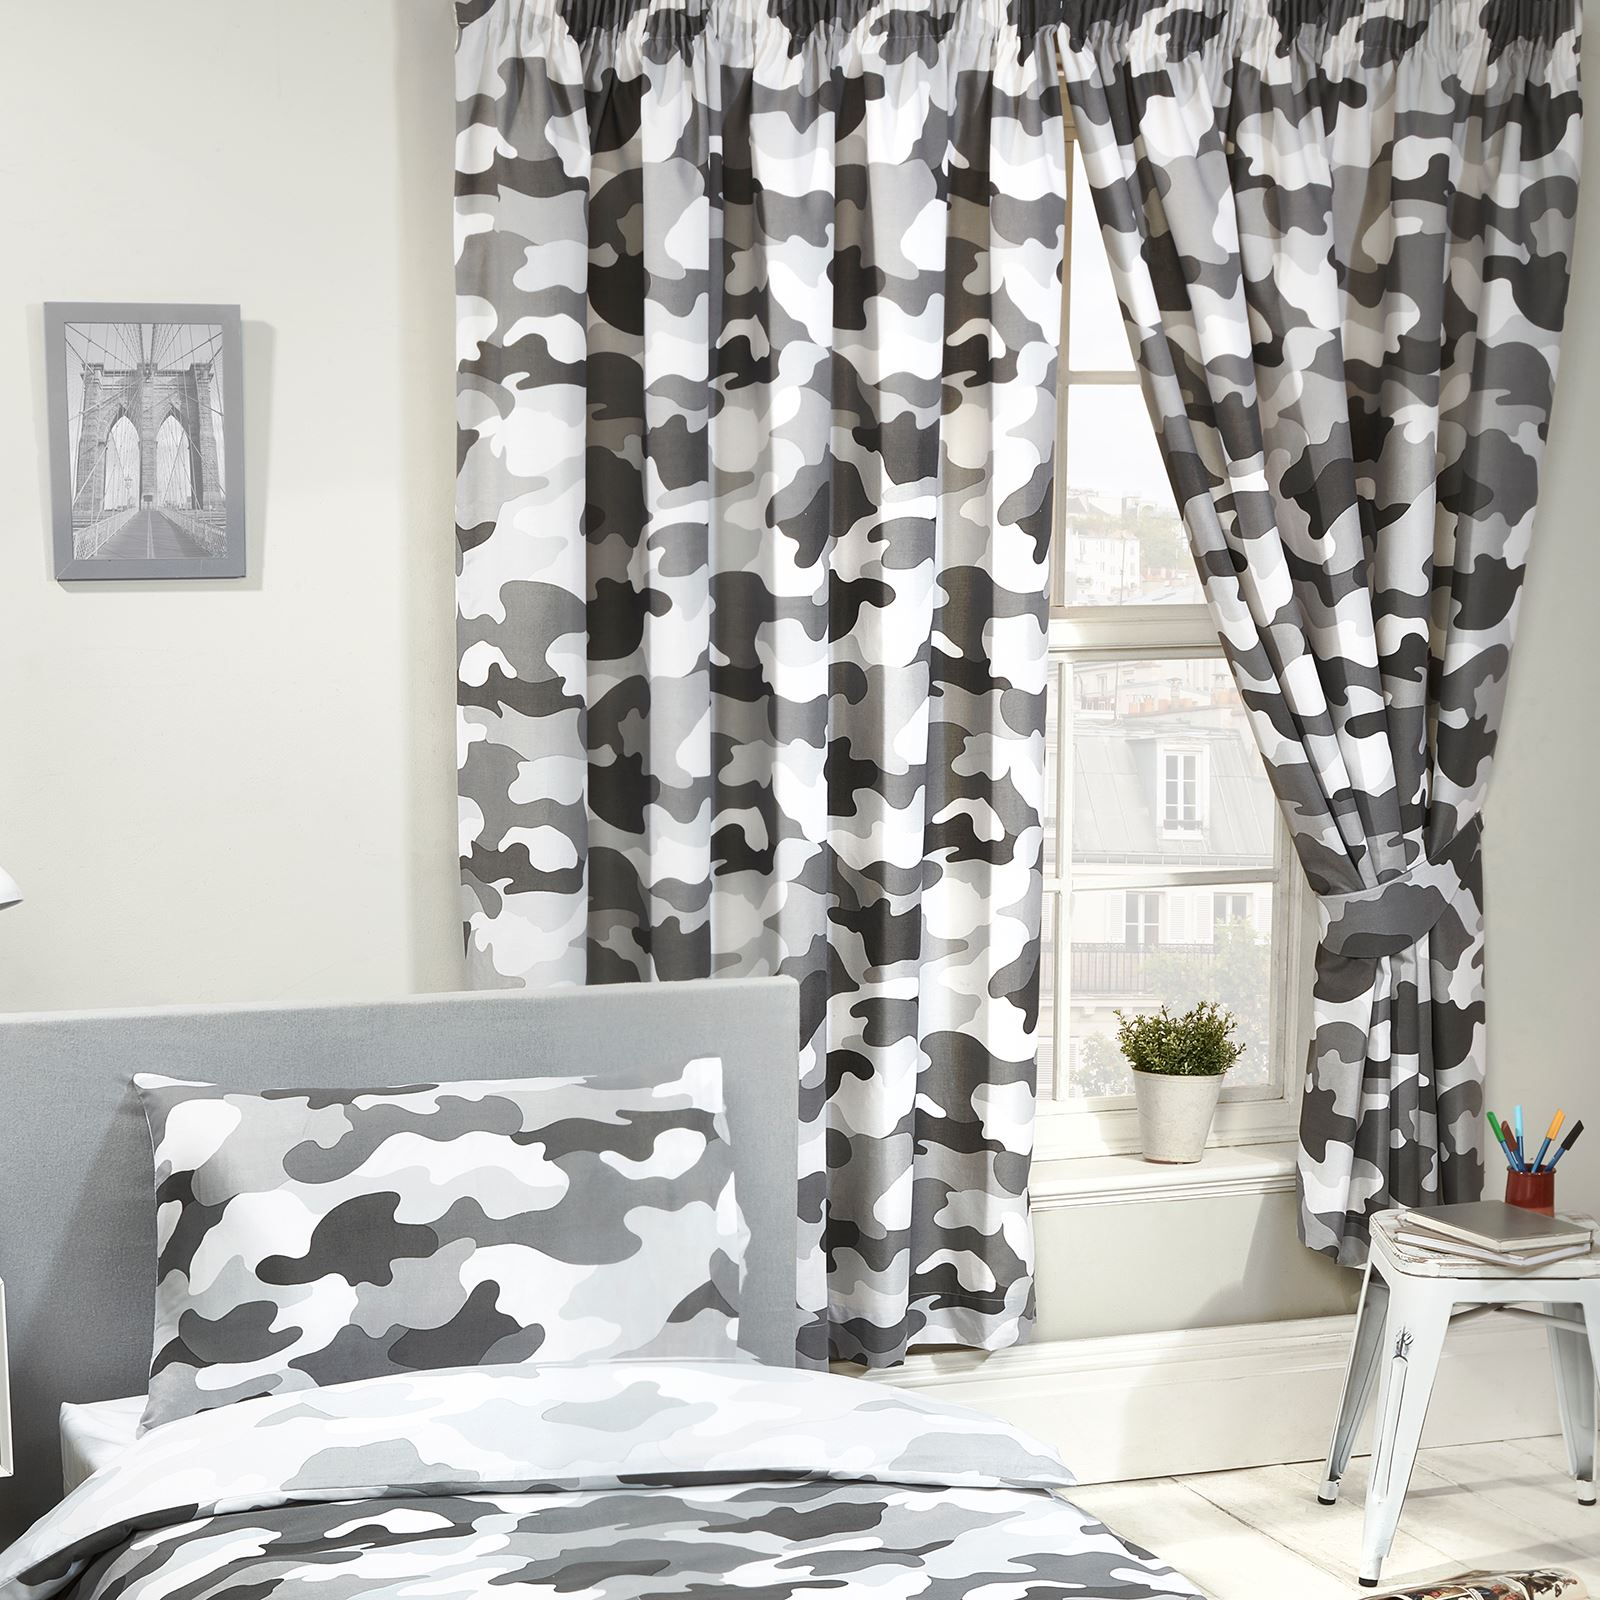 Boys Kids Bedroom Curtains 54 72 Army Football Camouflage Dinosaurs More Ebay